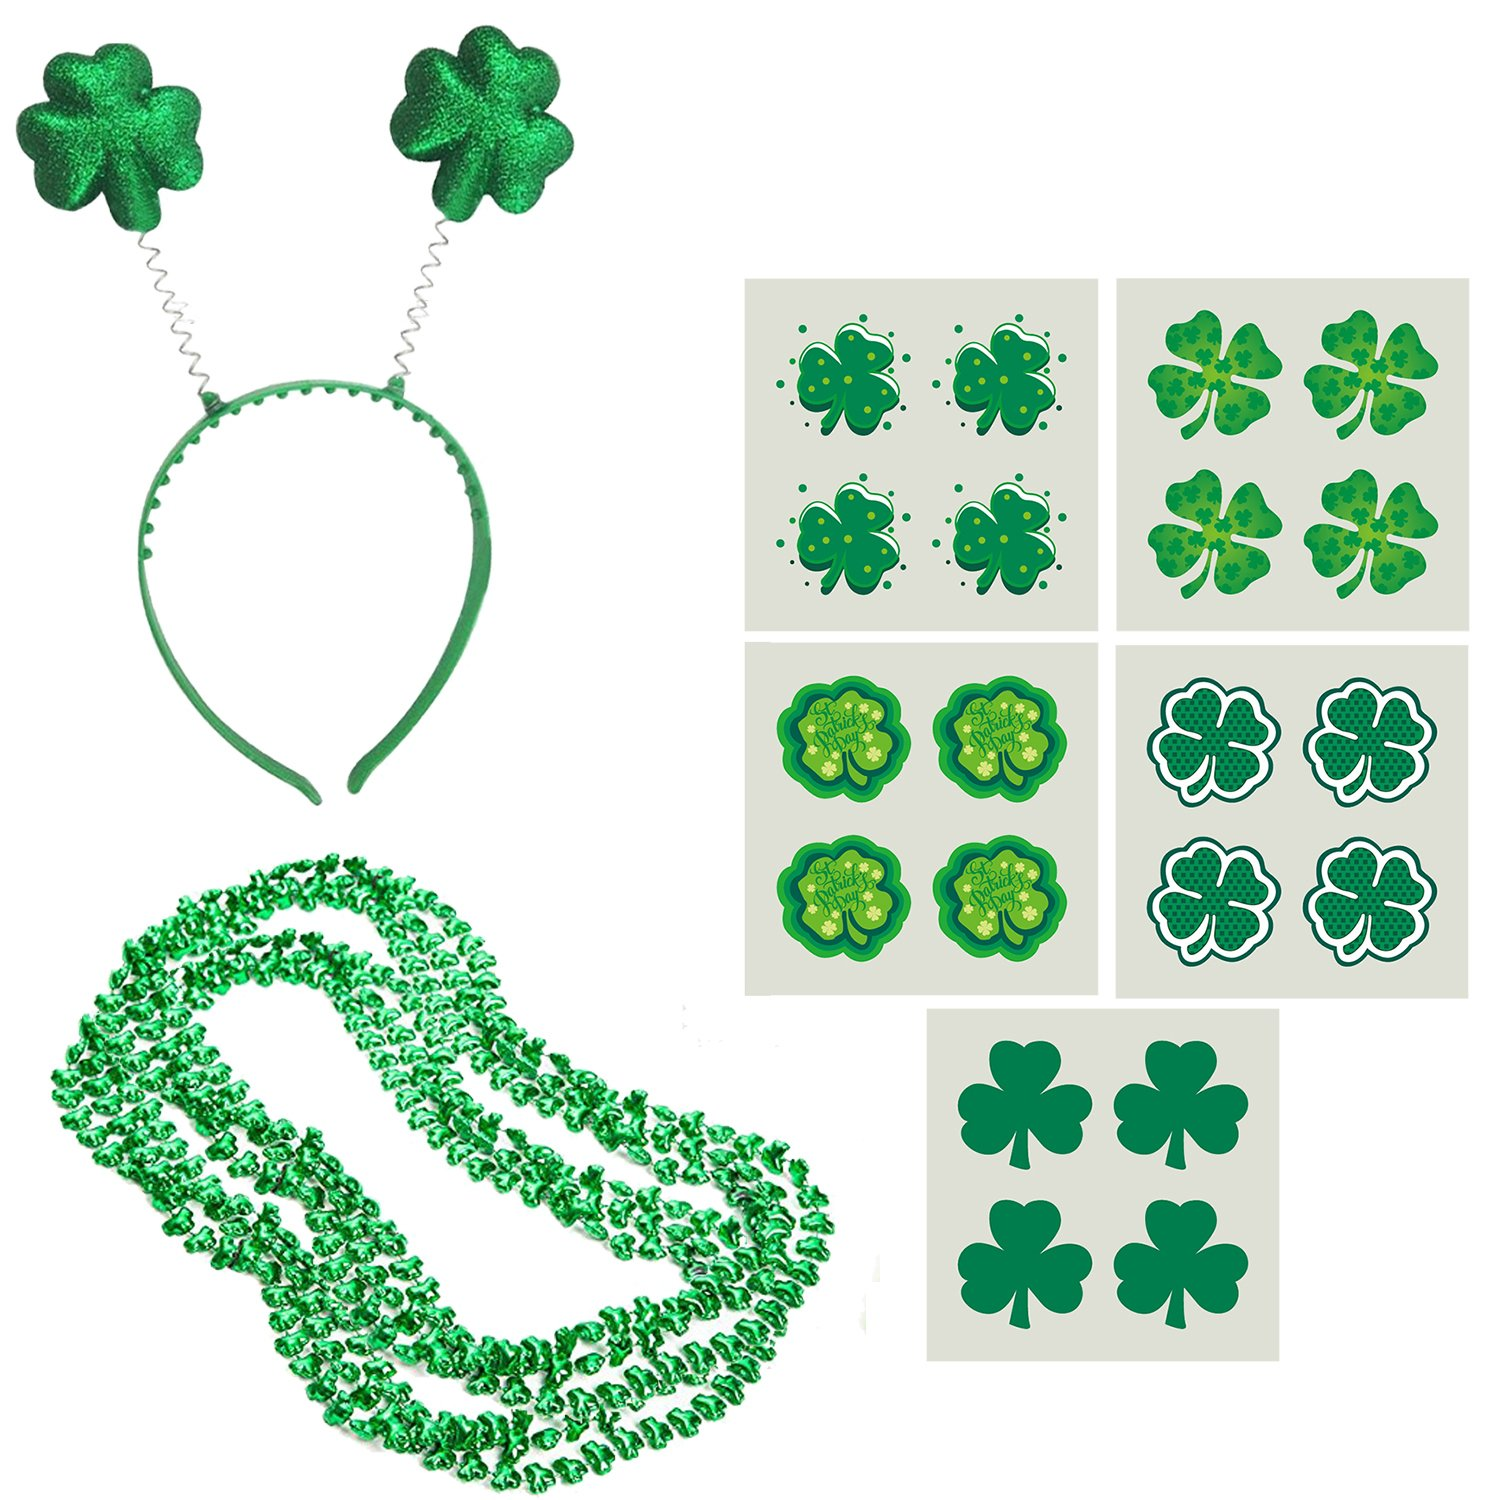 Amazon st patricks day accessories set 20 x shamrock amazon st patricks day accessories set 20 x shamrock patterned temporary tattoos 6 x st patricks day beads shamrock necklace 6 x green buycottarizona Images